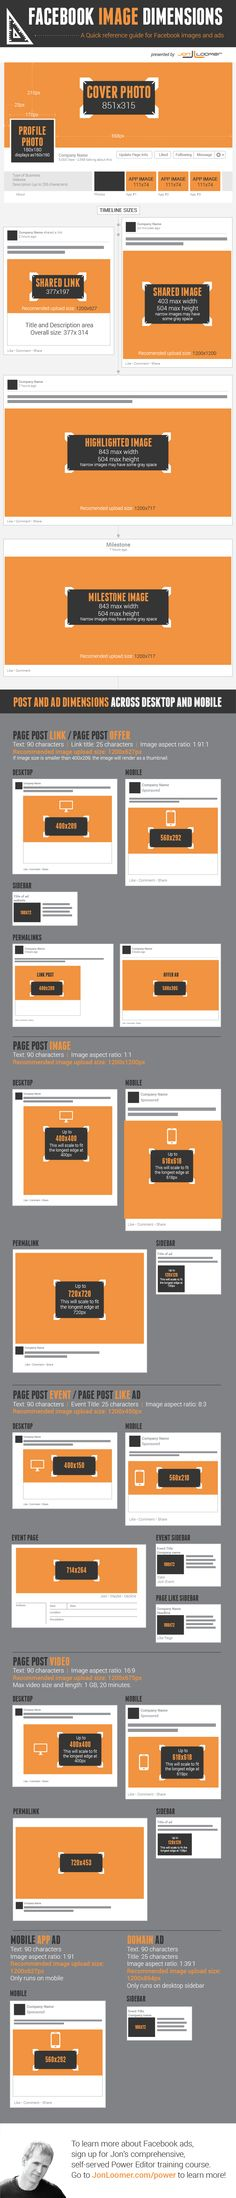 Do you know the measures of images for Facebook? Best Infographic for Graphic Designer! #infographic #Facebook #image #dimensions #measure #fb #socialnetwork